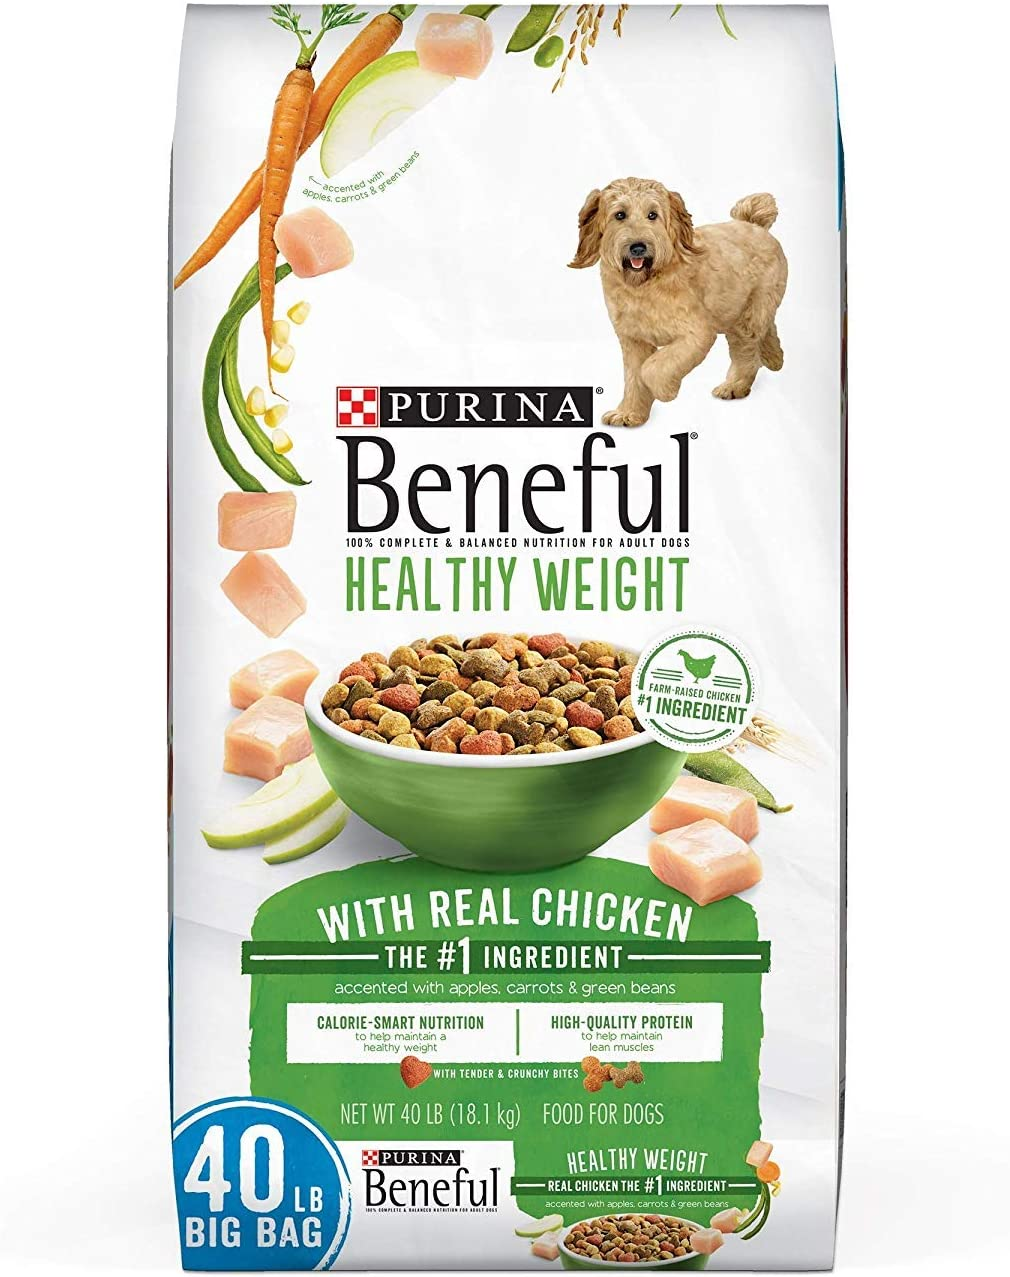 Purina Beneful Healthy Weight with Real Chicken Dry Dog Food (40 lb. Bag)